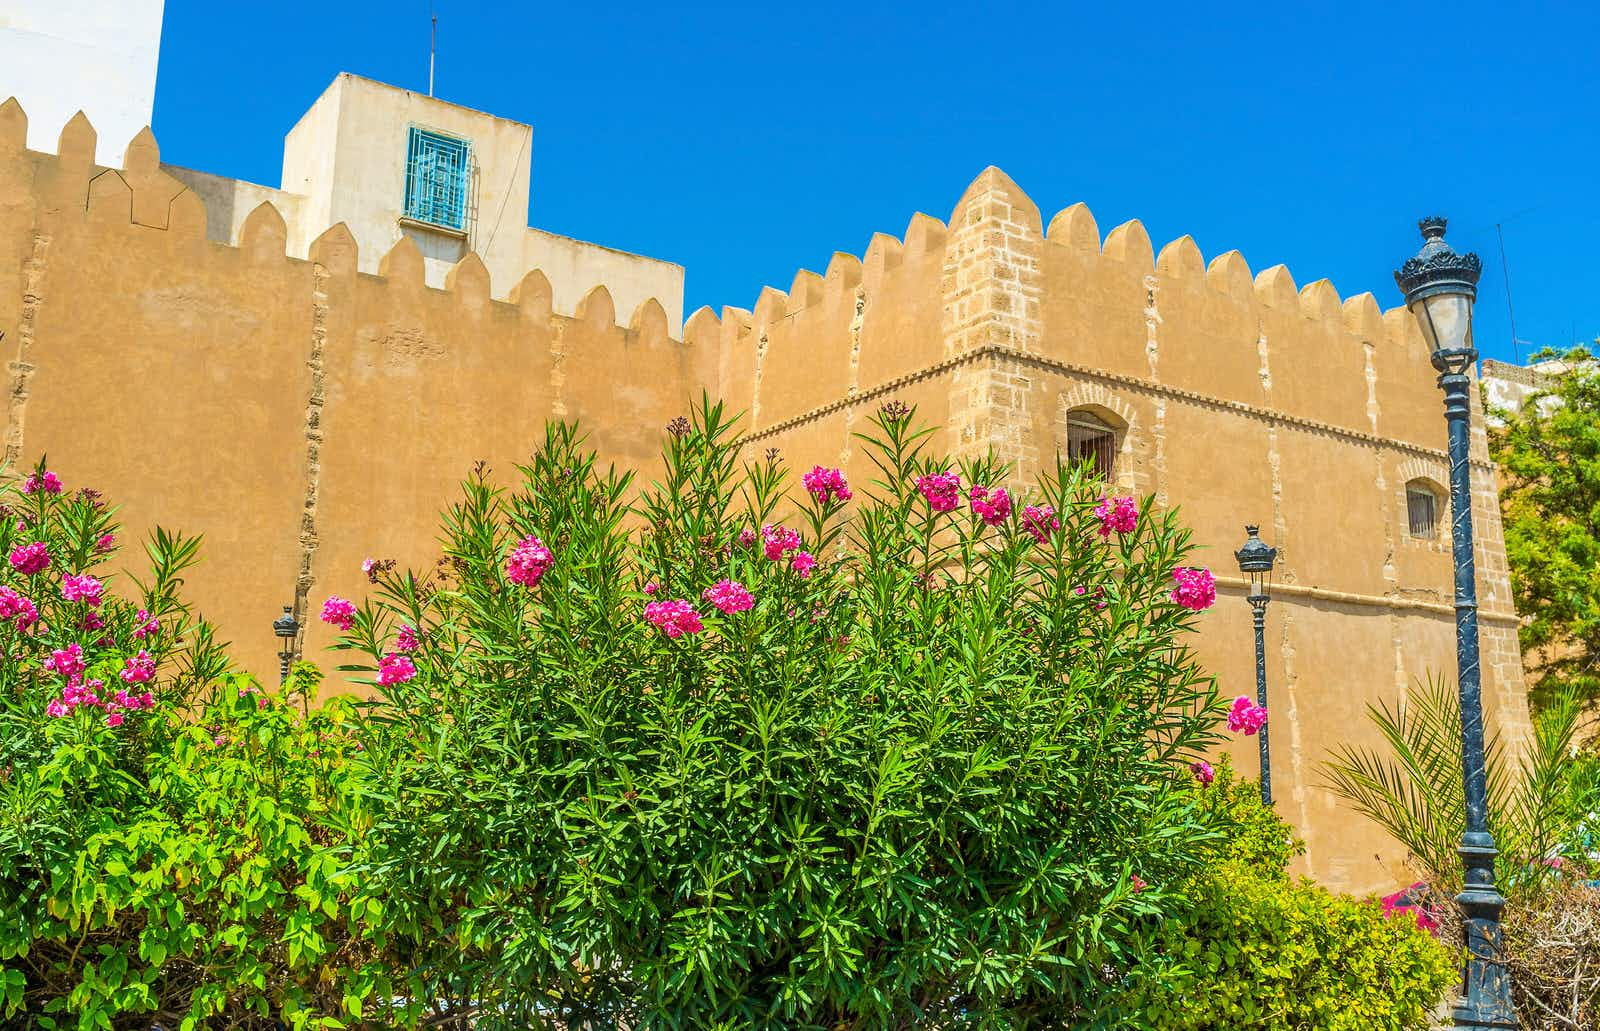 Sfax, Tunisia - September 3, 2015: The medieval fortification of Sfax surrounded by lush gardens with many colorful flowers, Tunisia.